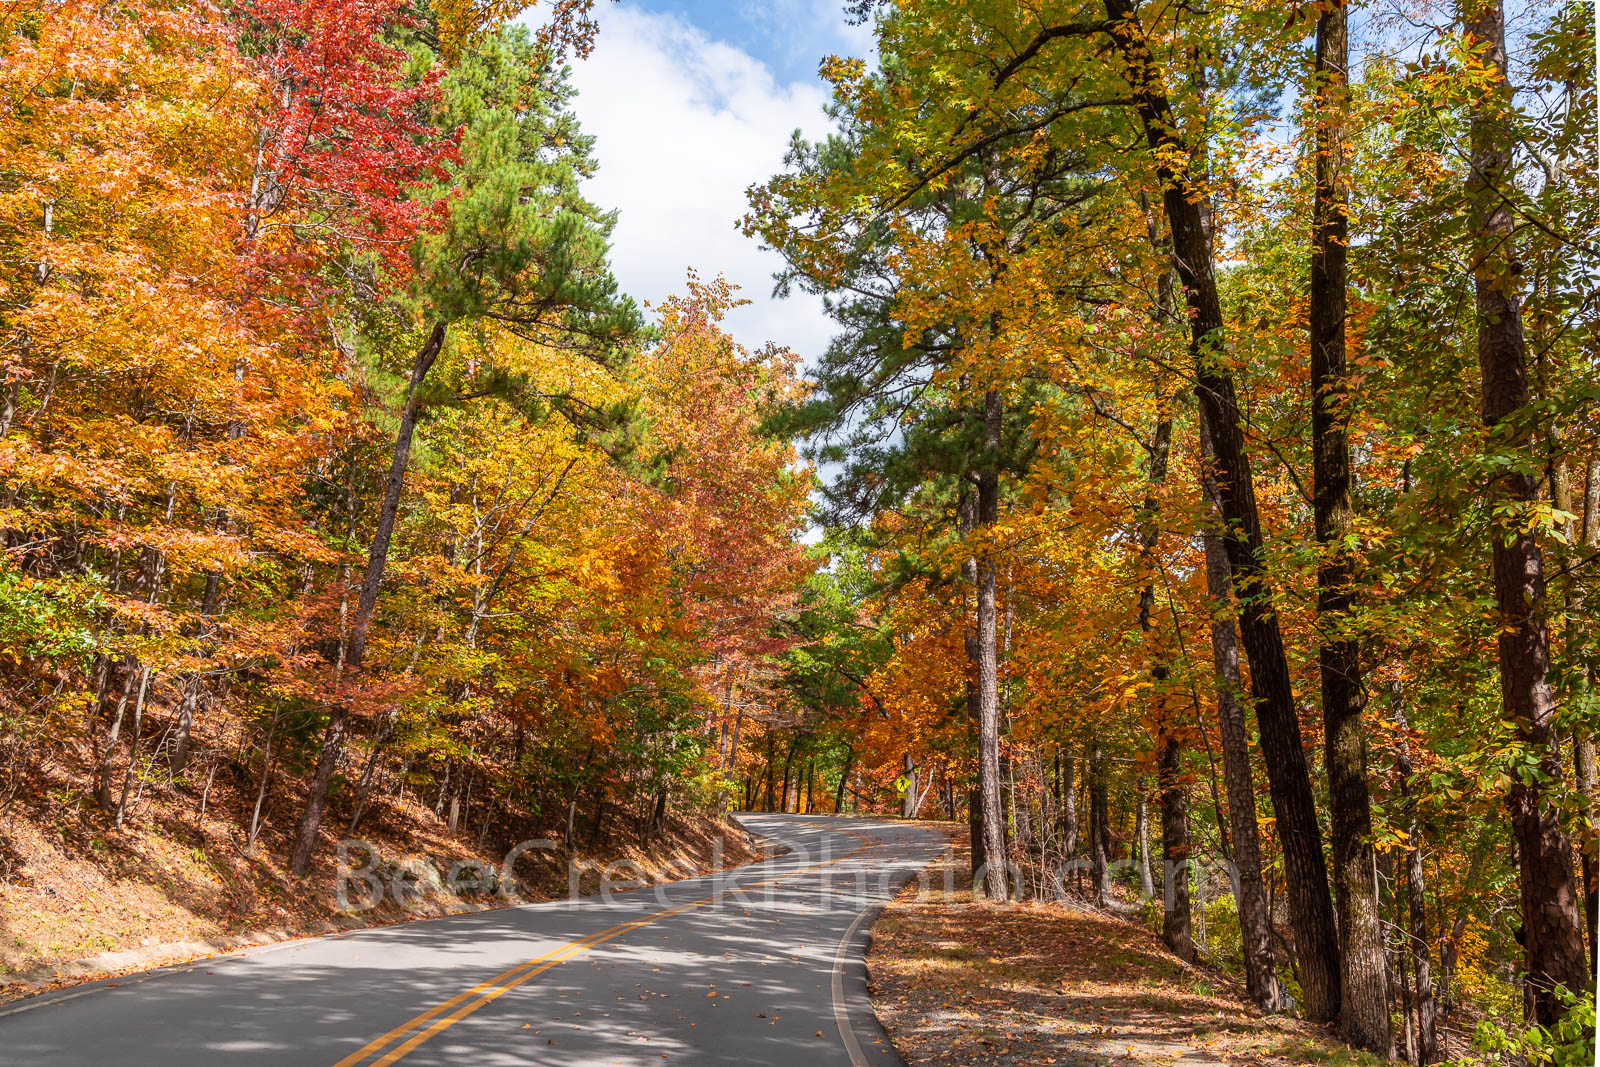 fall, autumn, drive, yellow, orange, pine, cypress, trees, shades, yellow, orange, rust, colors, fall colors, Tower Mountain, road, arkansas, national, forest, october, curves, sun light, tree line ro, photo